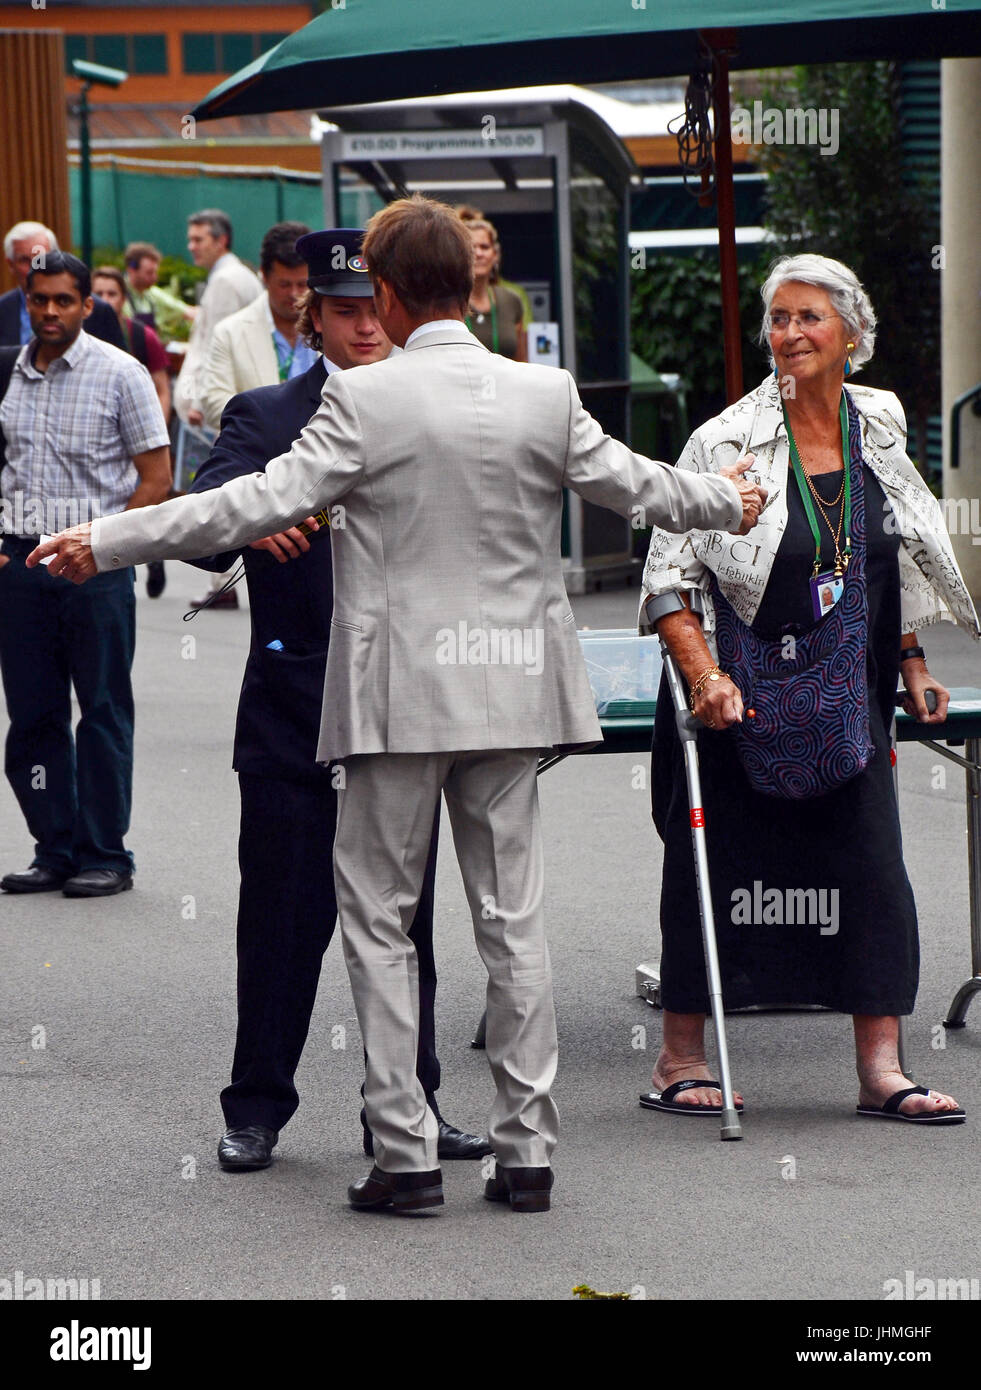 842ce22980232 14th July, 2017. Cliff Richard arriving at AELTC Wimbledon Lawn Tennis  Championships on the second Friday of the tournament goes through security  check.